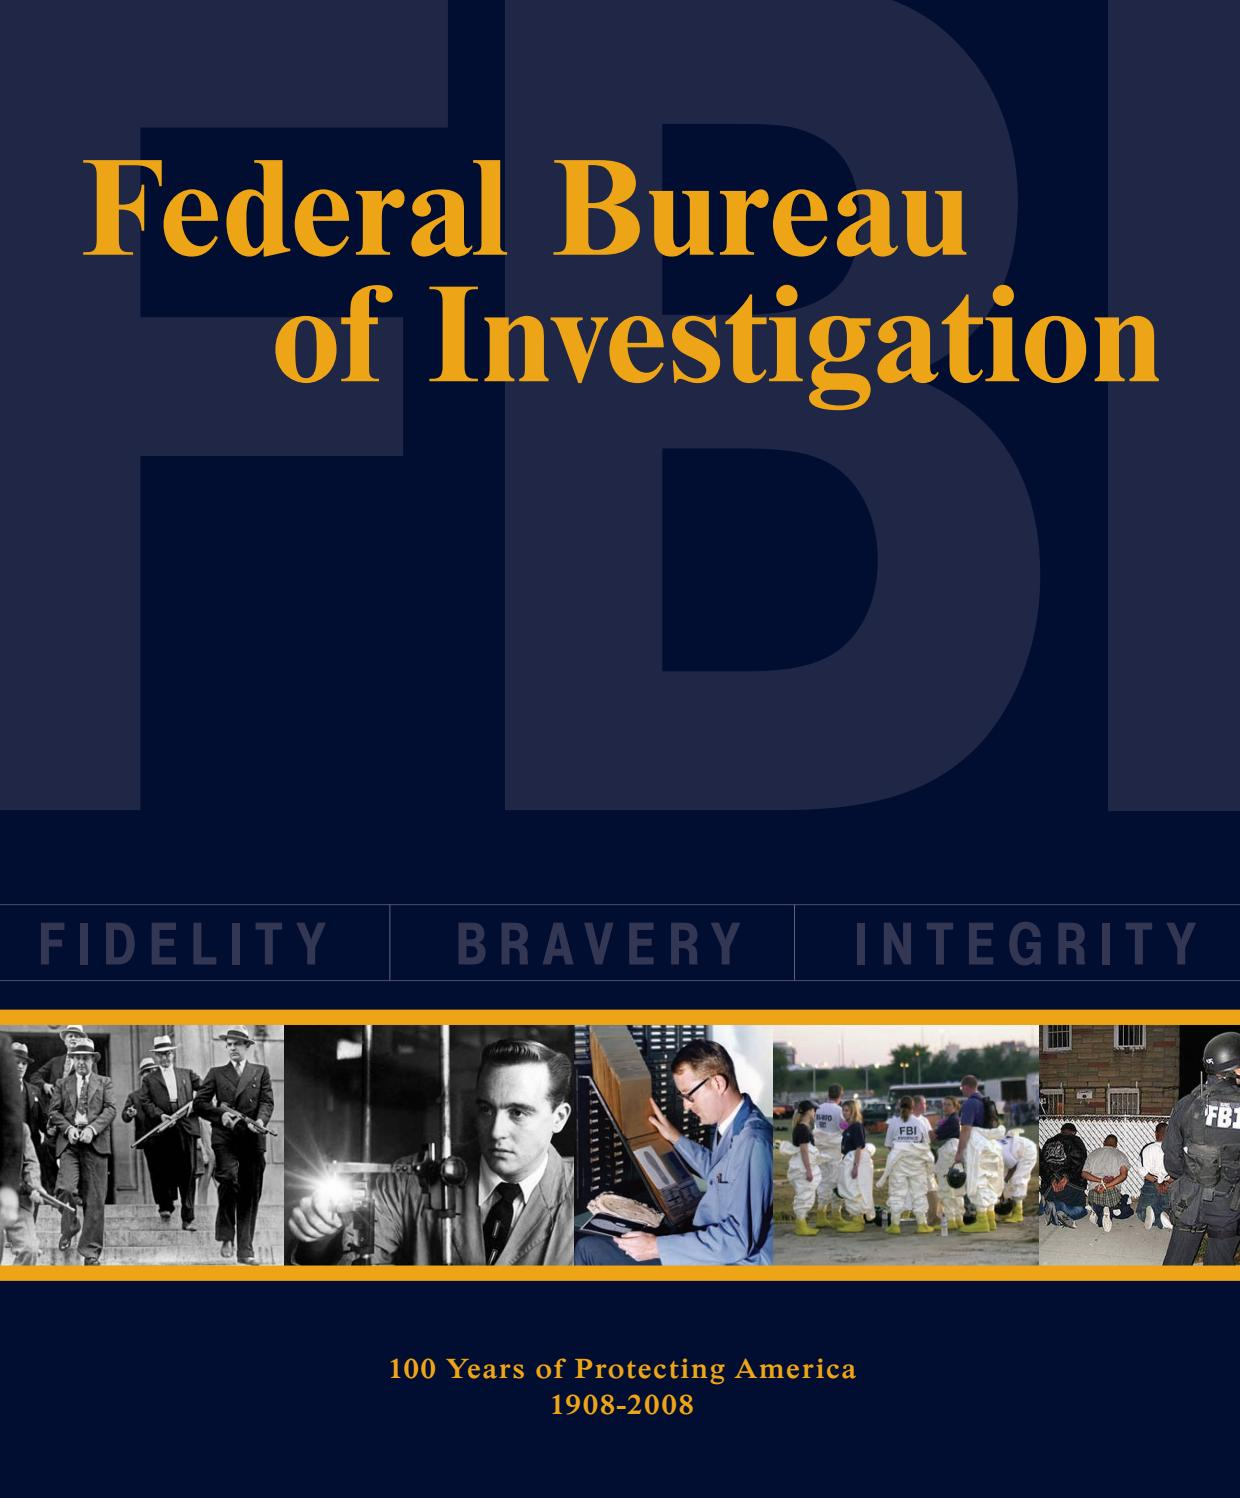 federal bureau of investigation 100 years of protecting. Black Bedroom Furniture Sets. Home Design Ideas